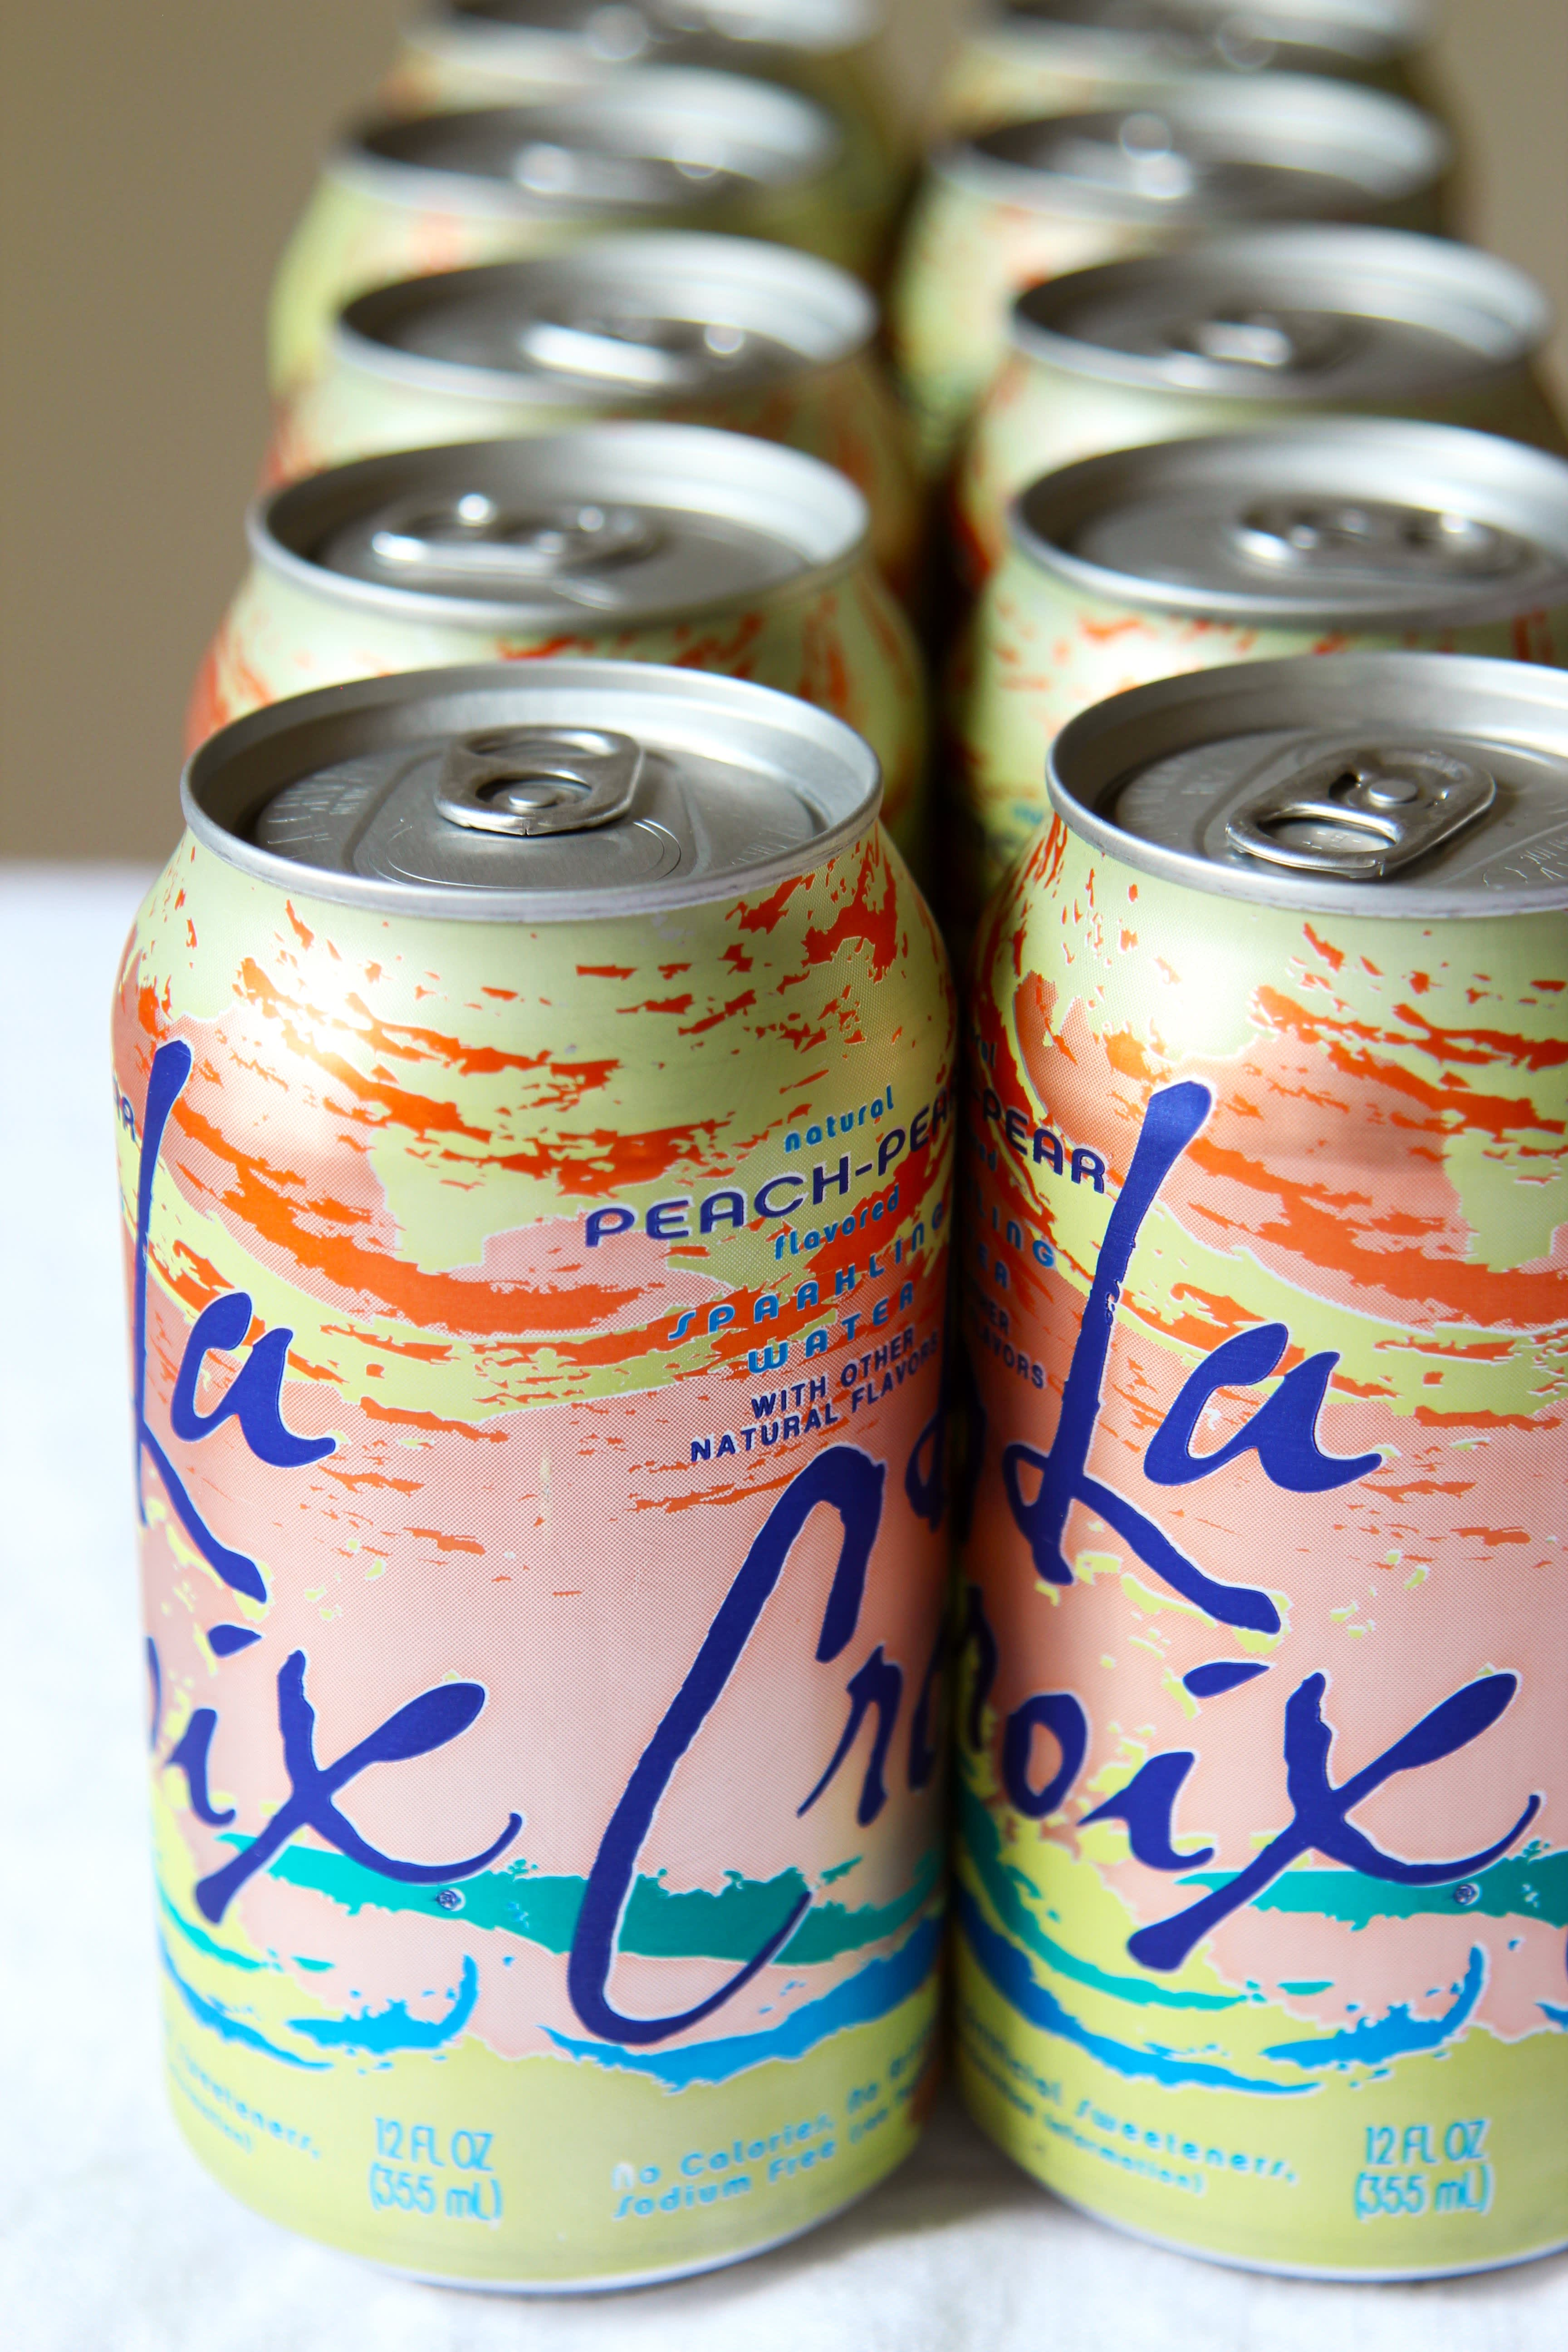 Cans of LaCroix water